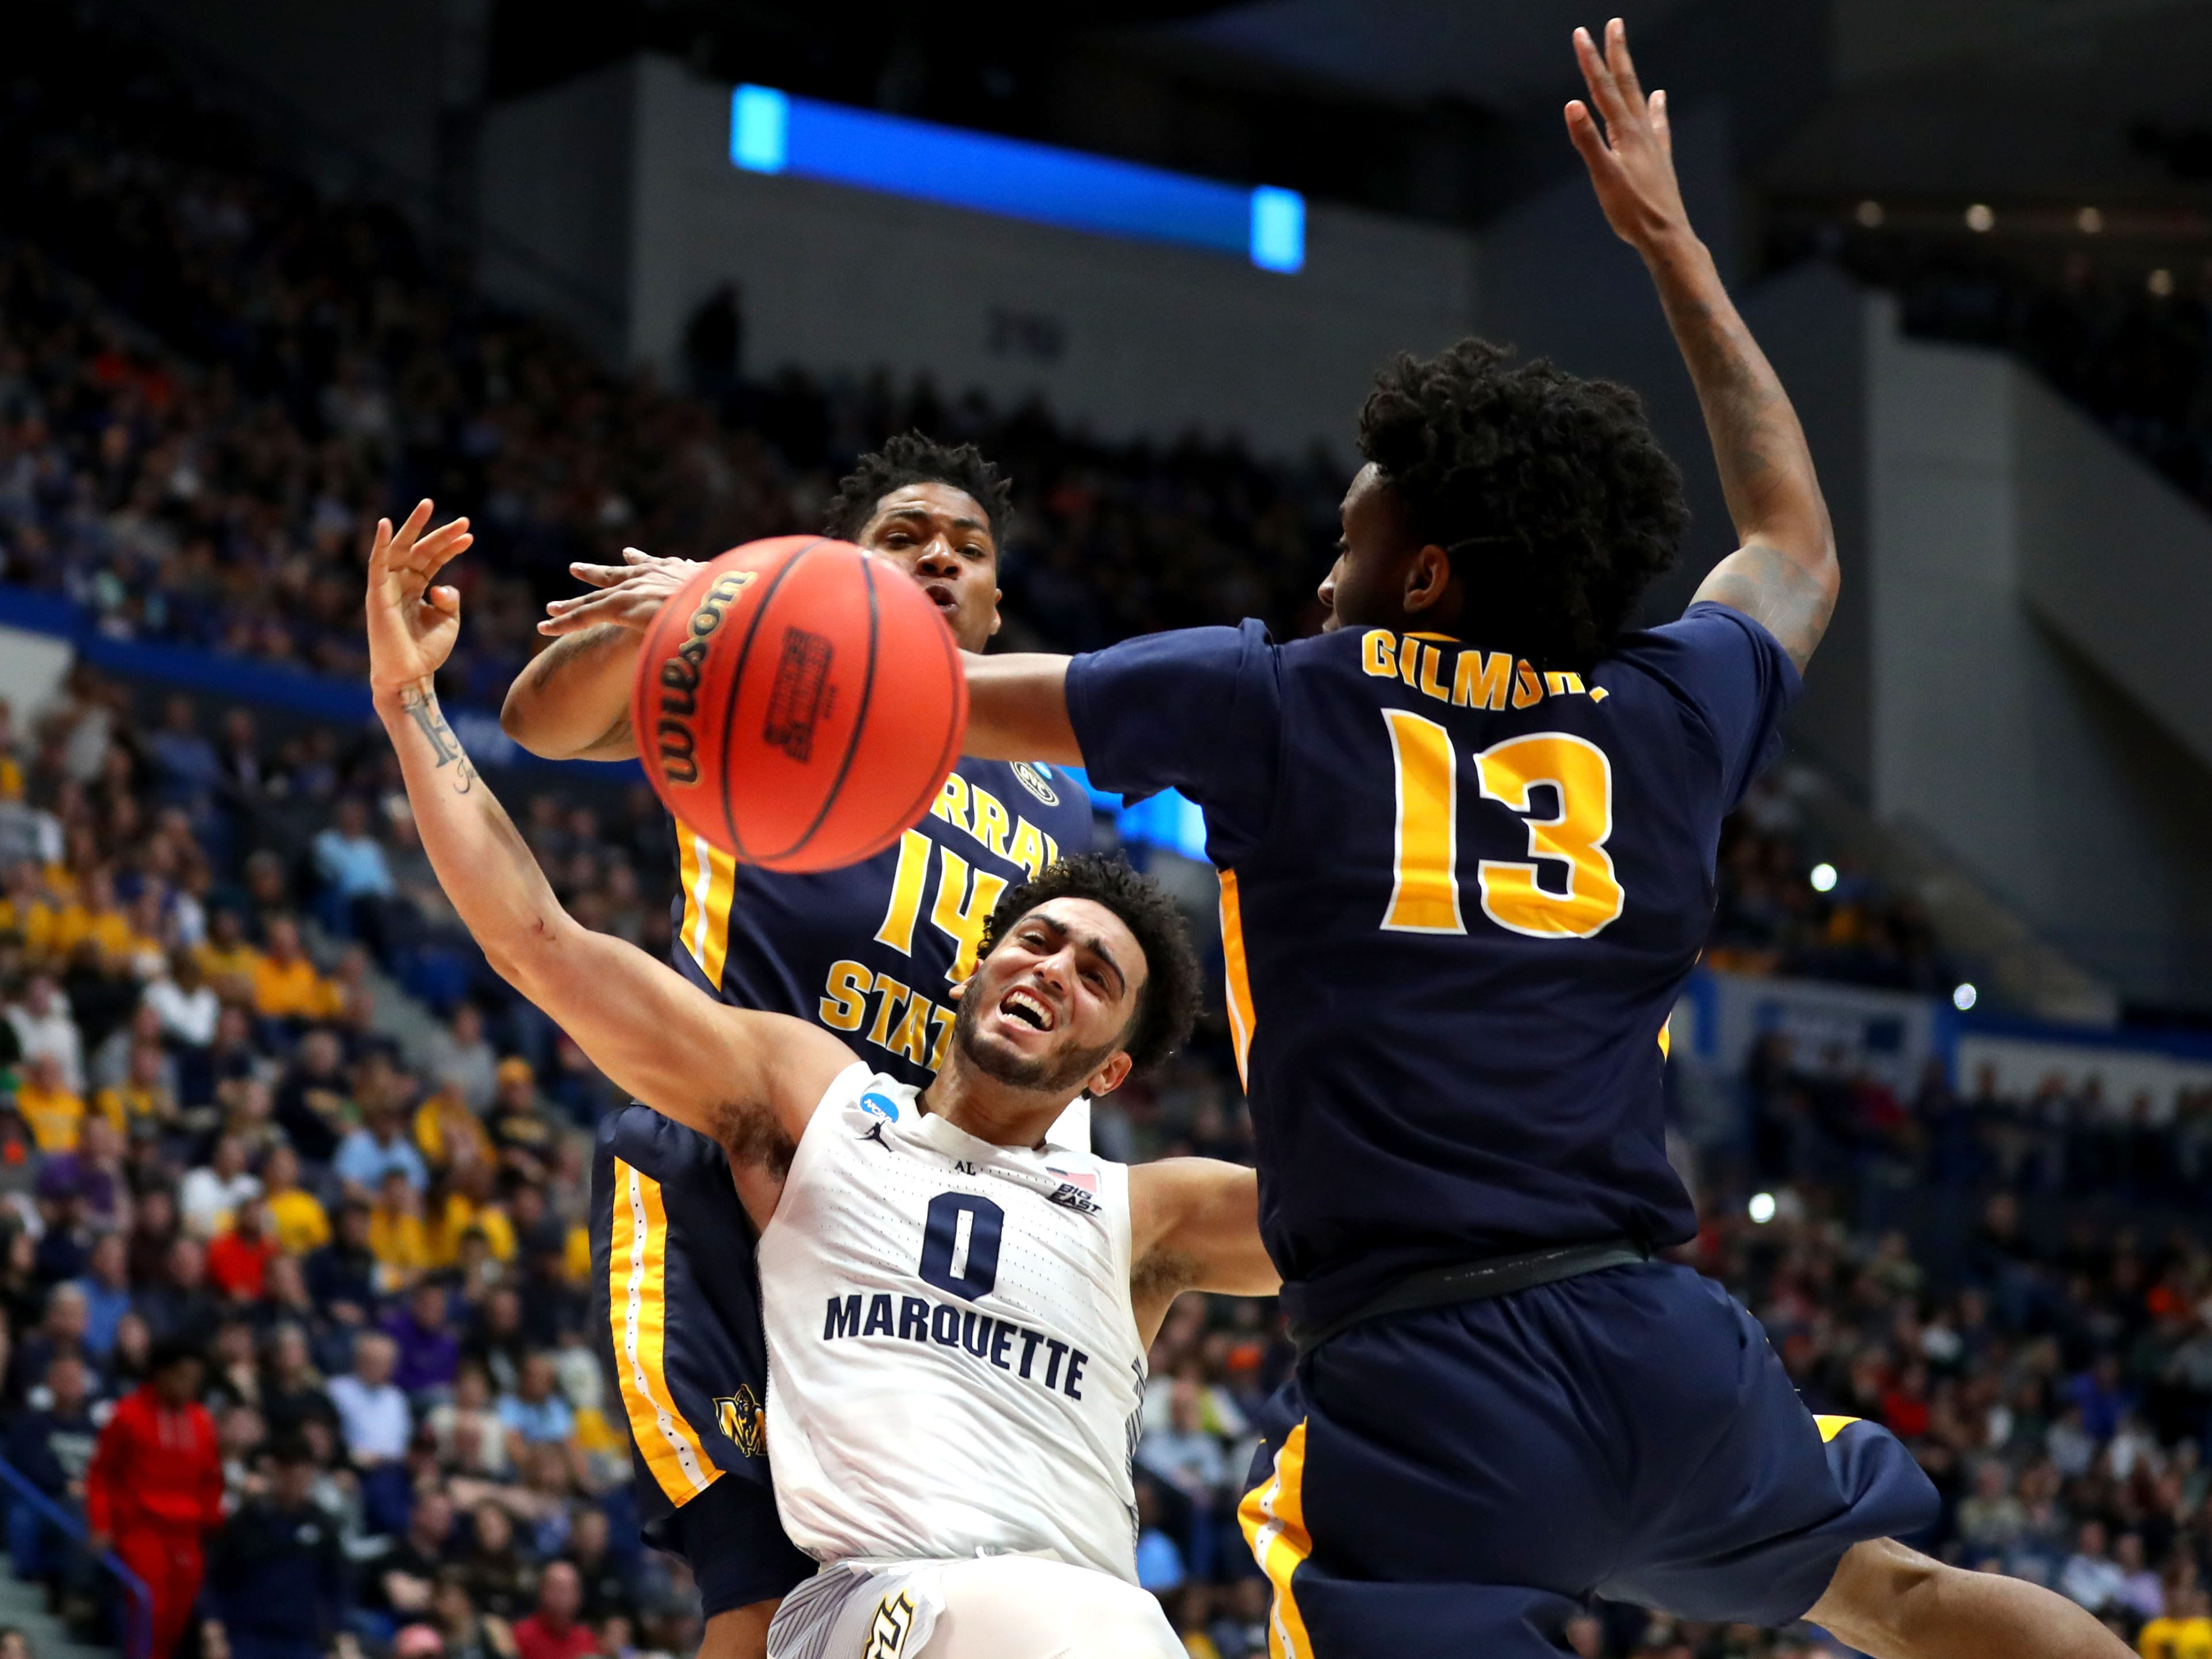 Markus Howard of Marquette is fouled on a drive to the basket against Murray State.